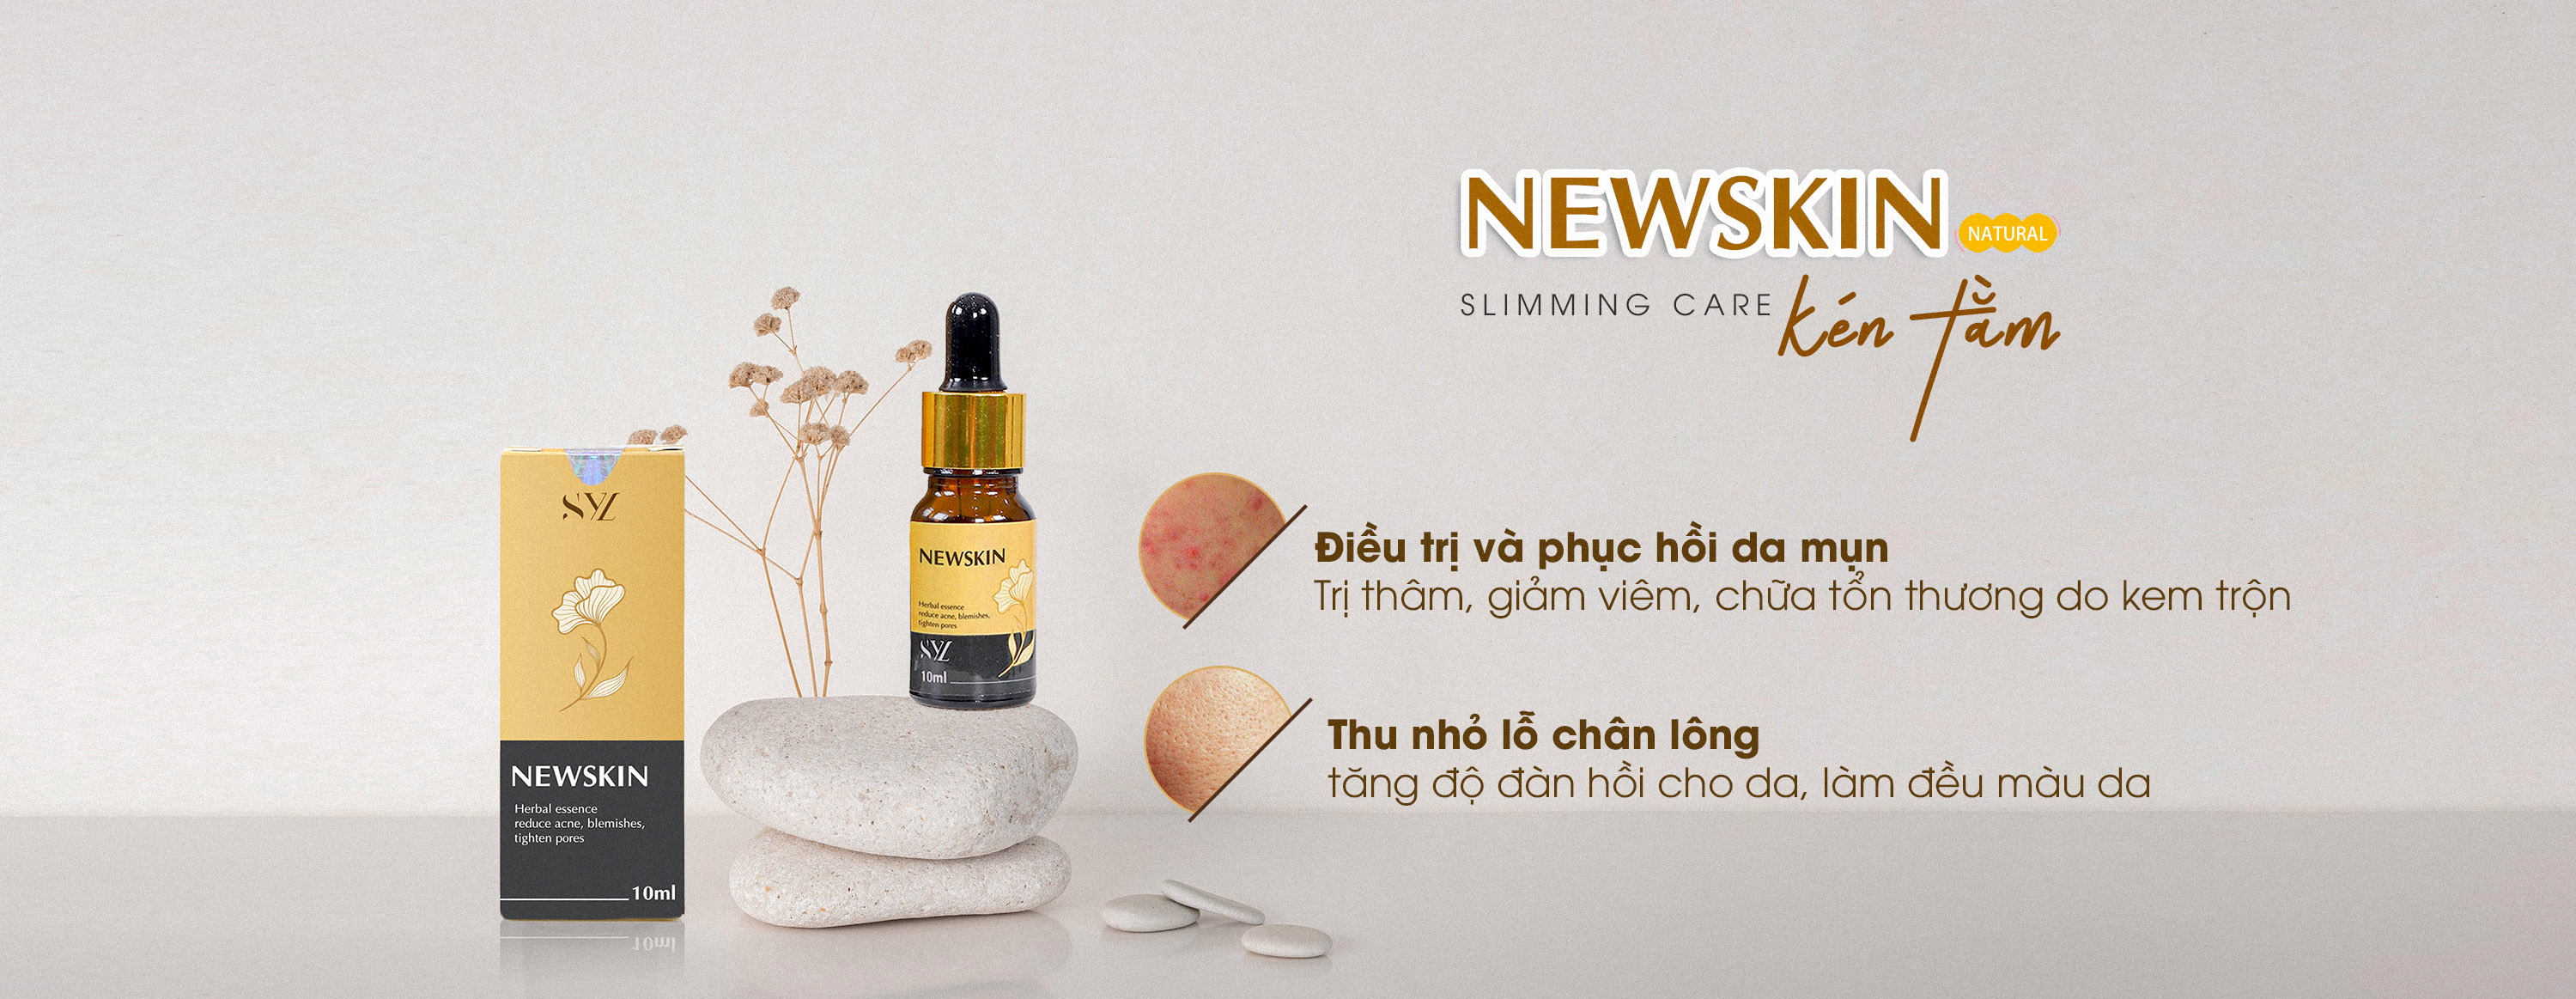 slimming care vn)